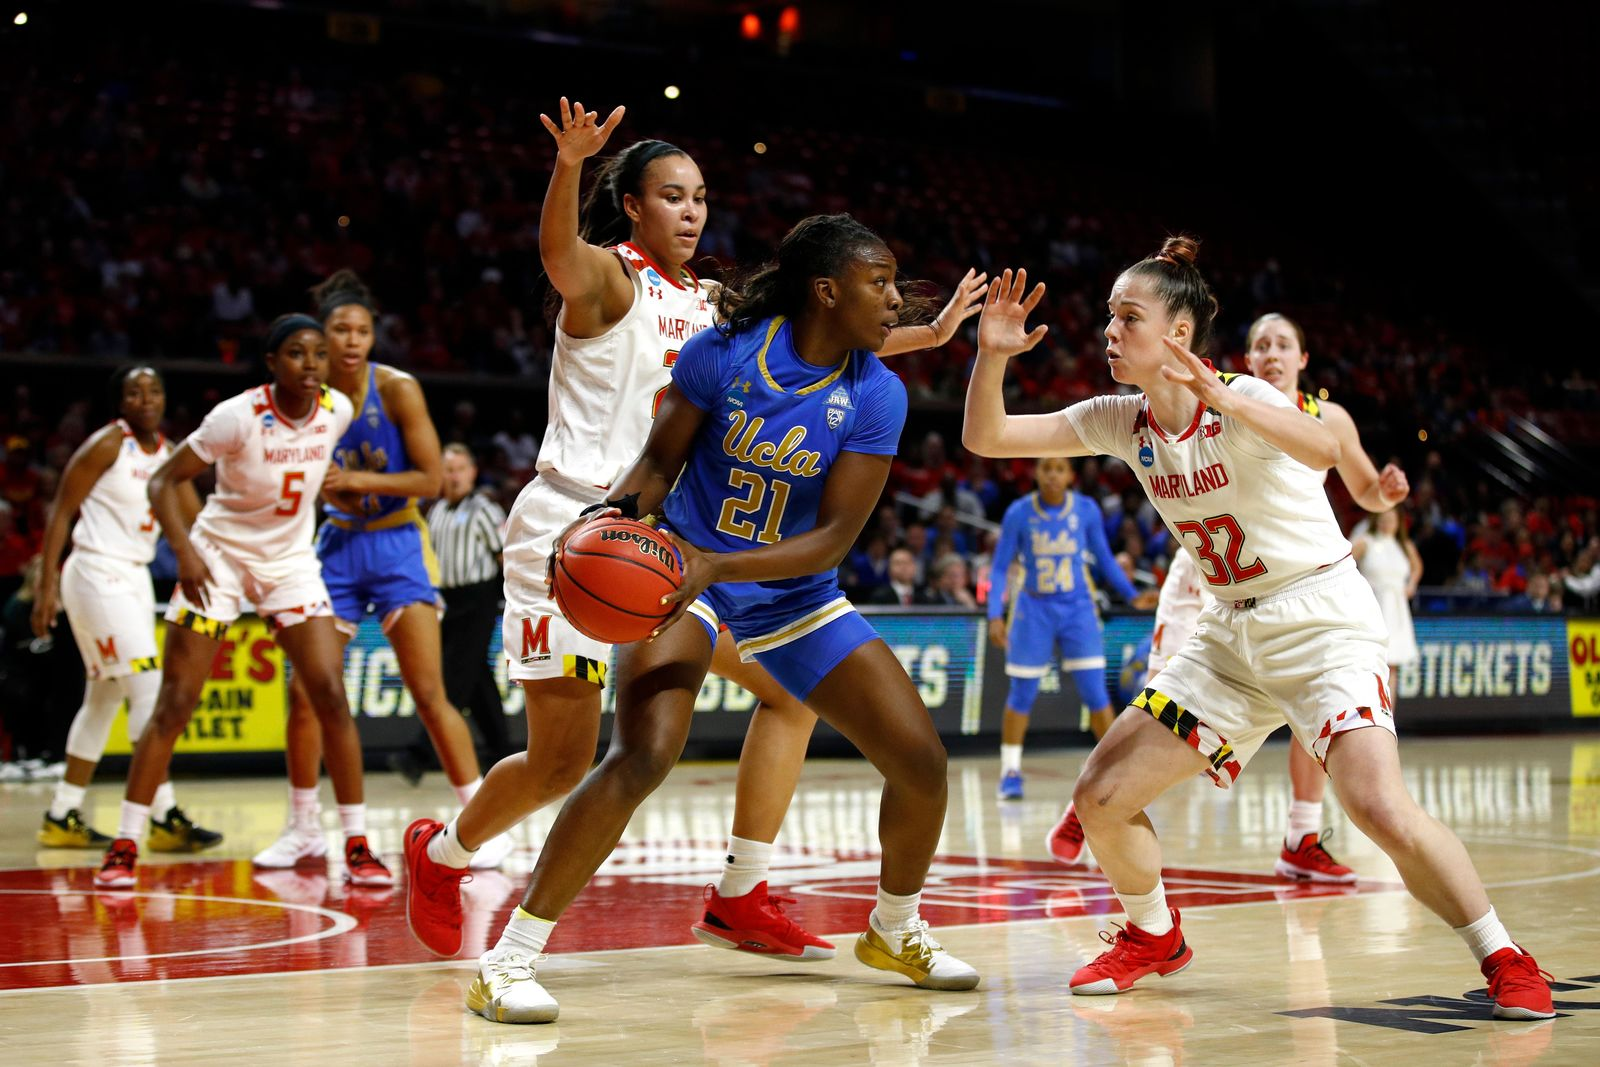 UCLA forward Michaela Onyenwere (21) protects the ball as she is pressured by Maryland guard Sara Vujacic, right, and forward Stephanie Jones during the first half of a second-round game in the NCAA women's college basketball tournament, Monday, March 25, 2019, in College Park, Md. (AP Photo/Patrick Semansky)